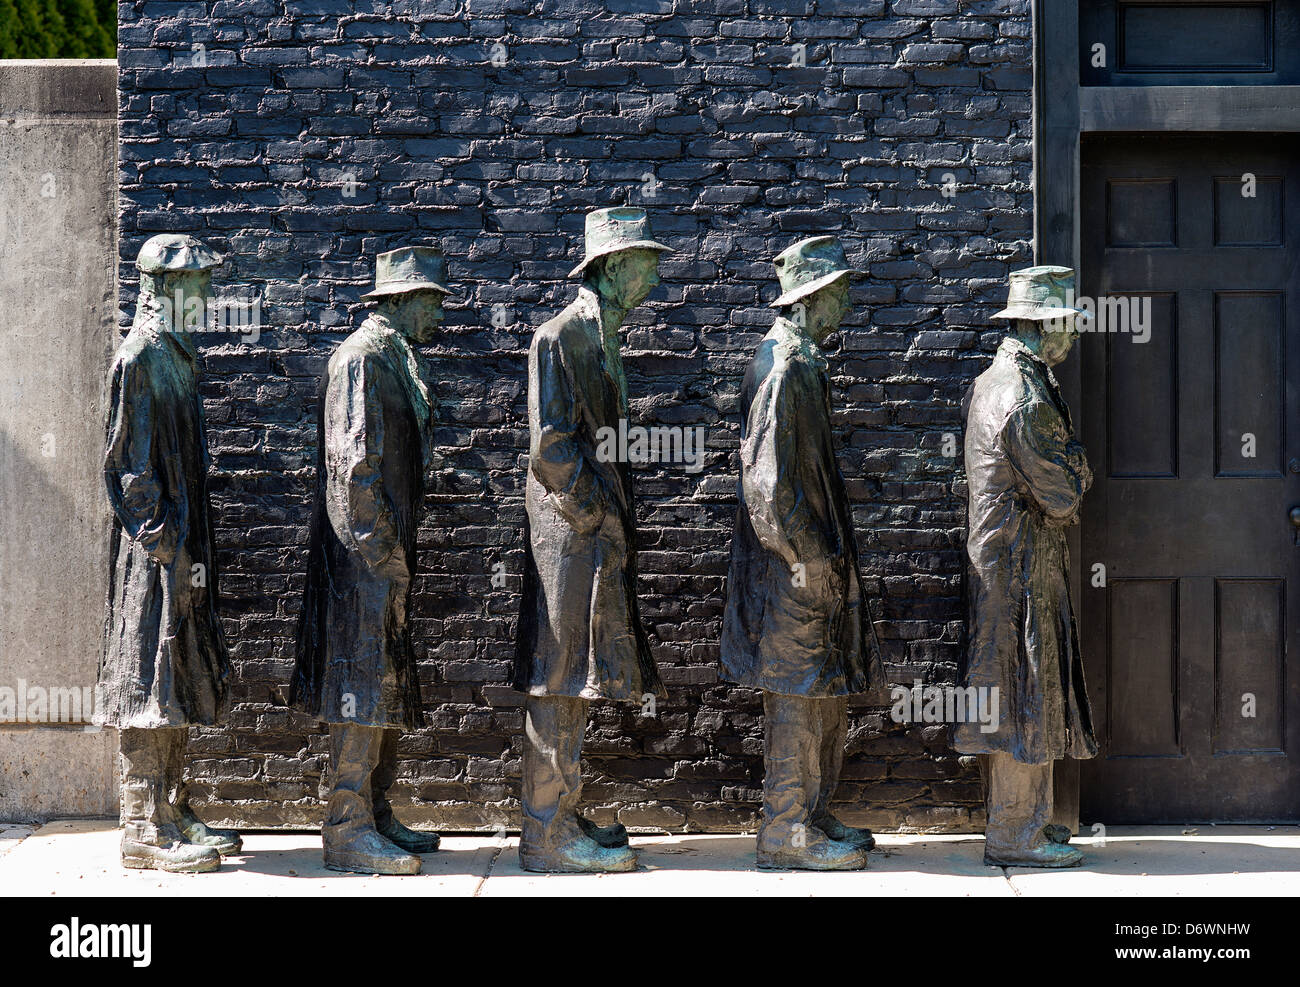 Depression Bread Line, Grounds for Sculpture, Hamilton, New Jersey, USA - Stock Image